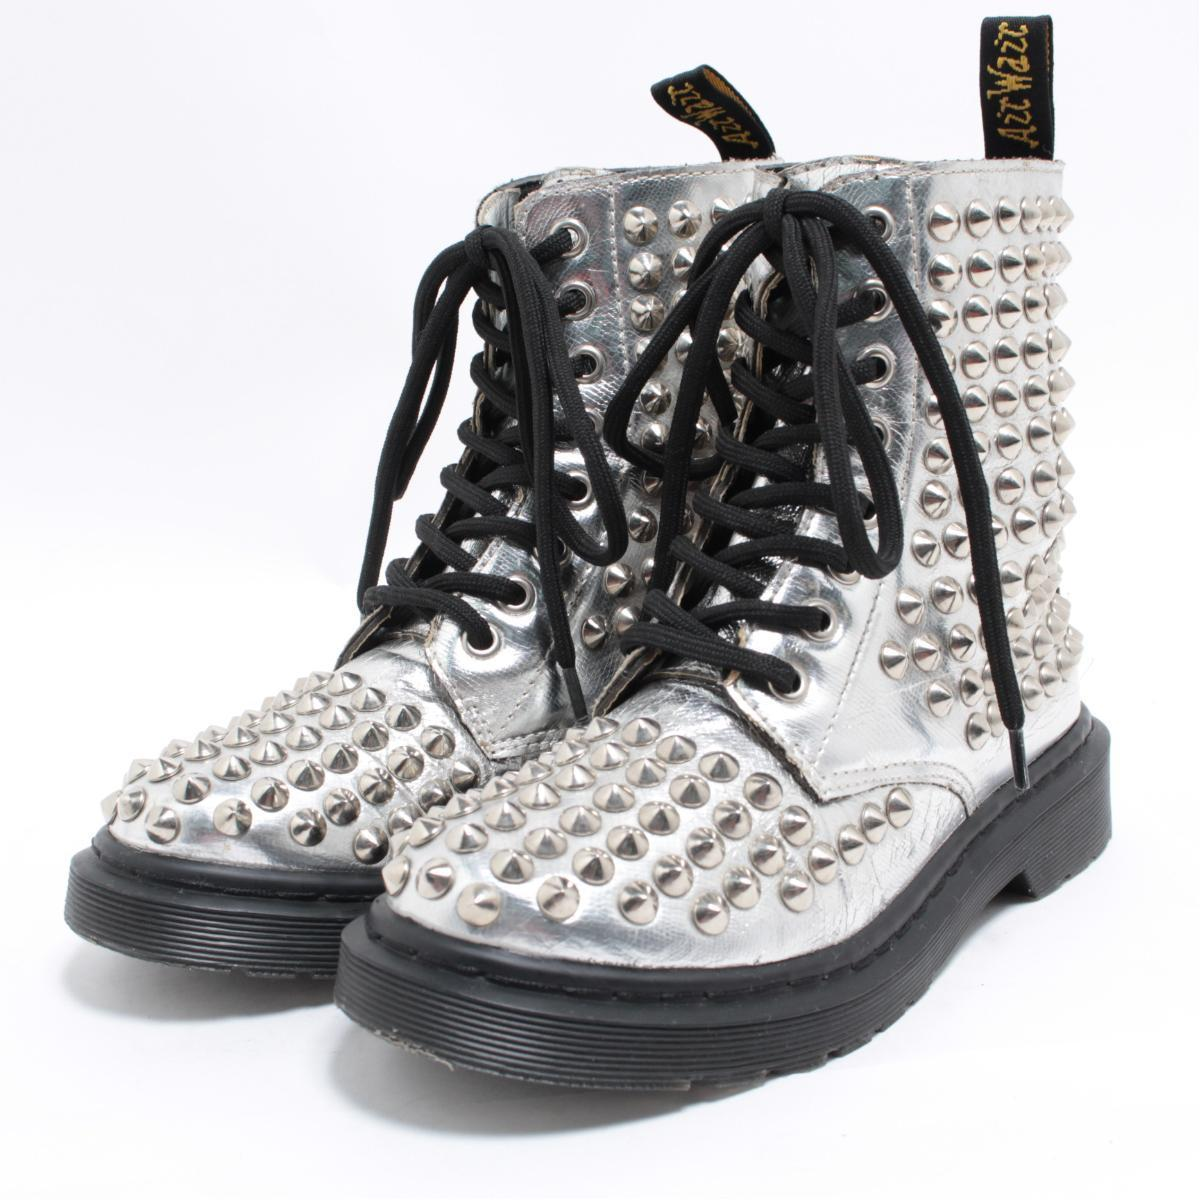 Doctor Martin Dr.Martens studs 8 hall boots UK2 Lady's 20.5cm /bol3964